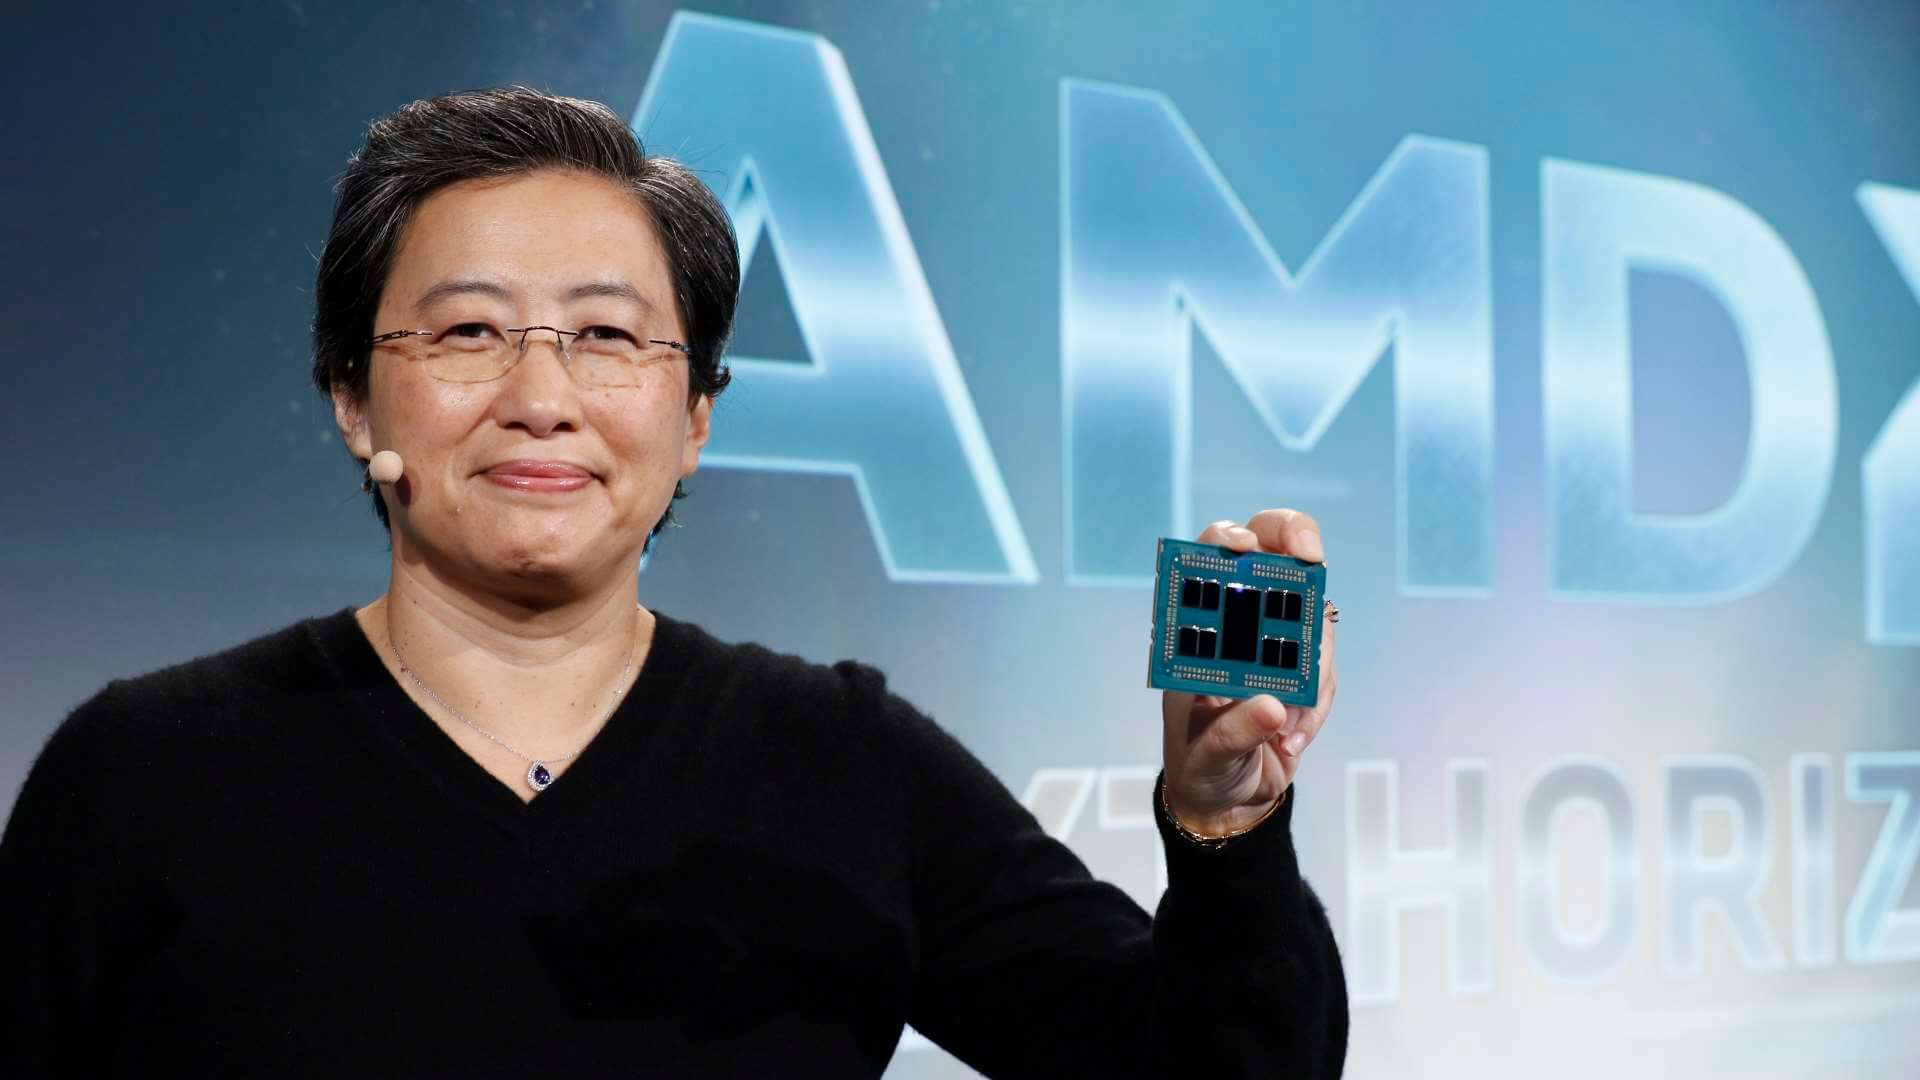 AMD Ryzen 9 APUs could present a new challenge for Intel